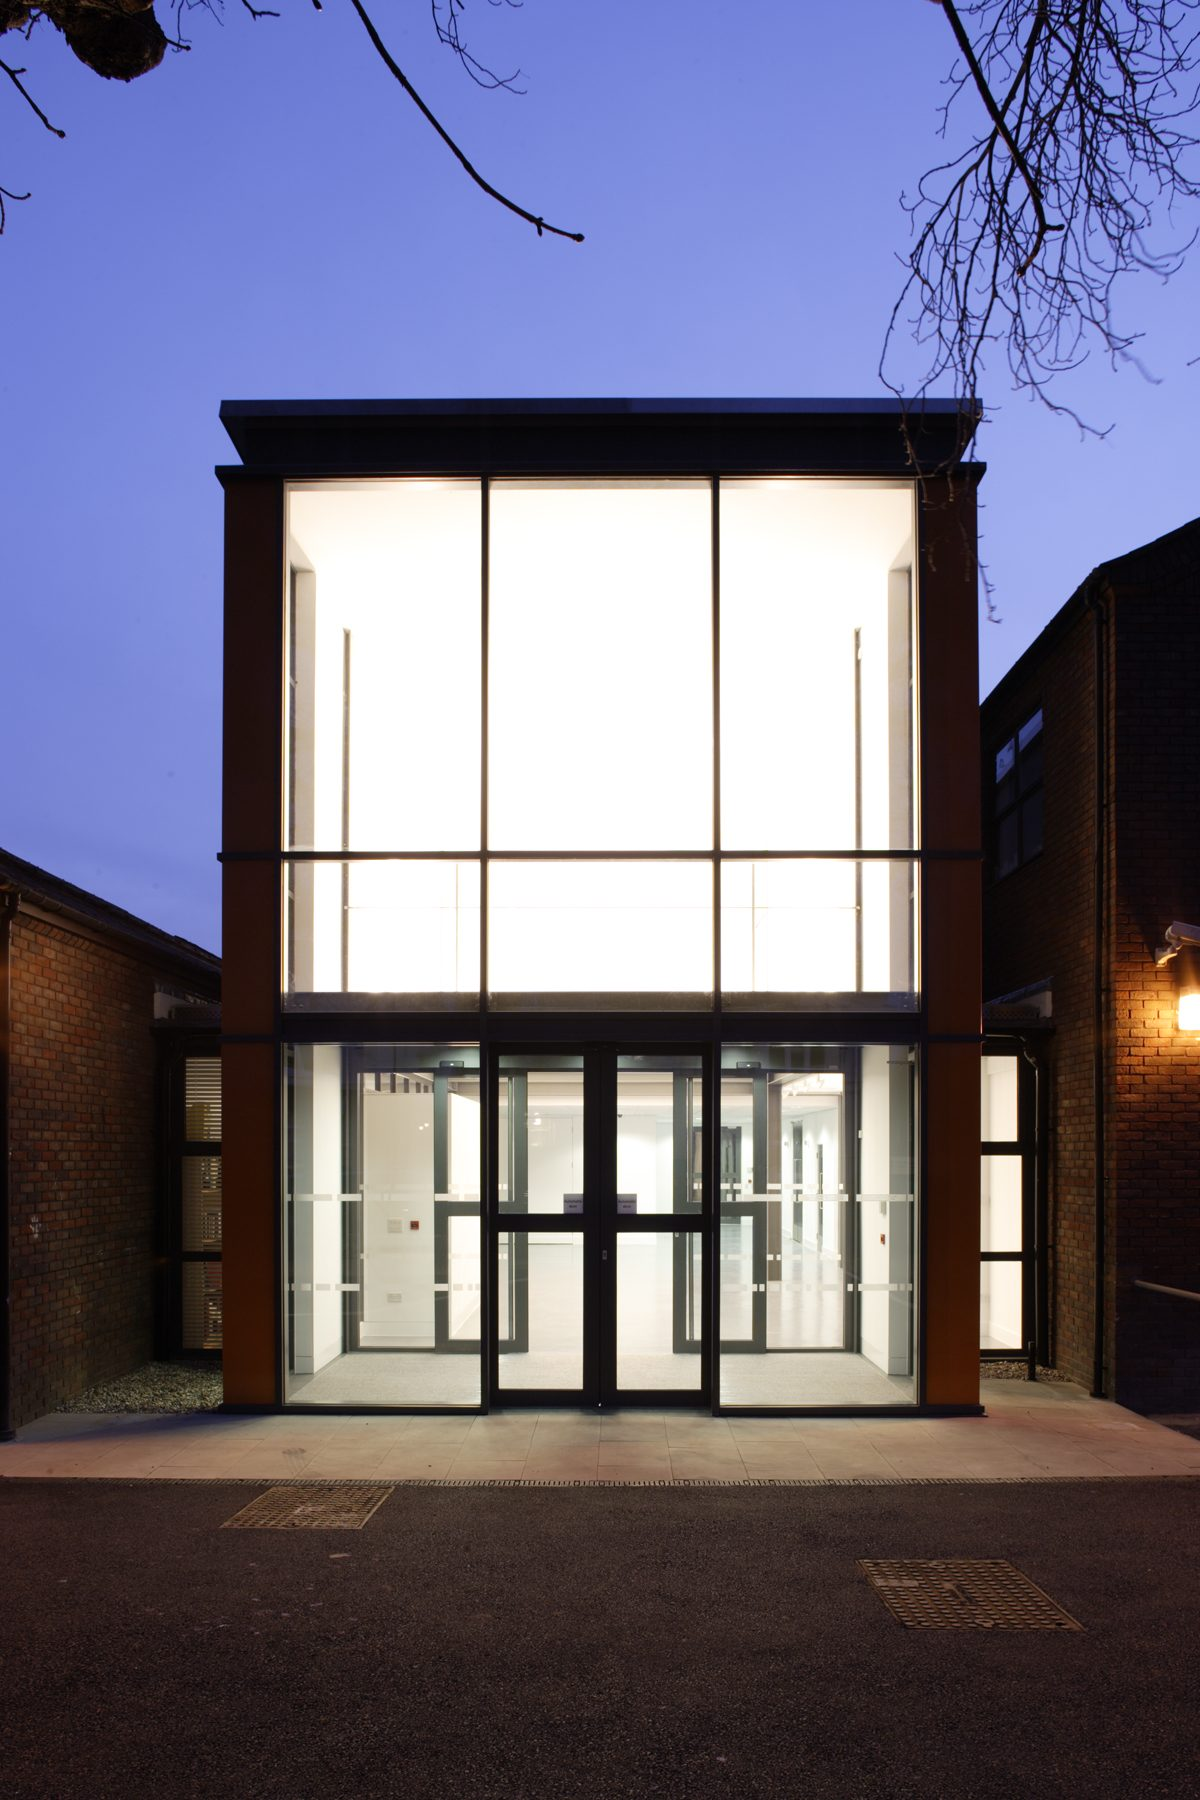 Wimbledon College of Art - Foyer - Exterior by night